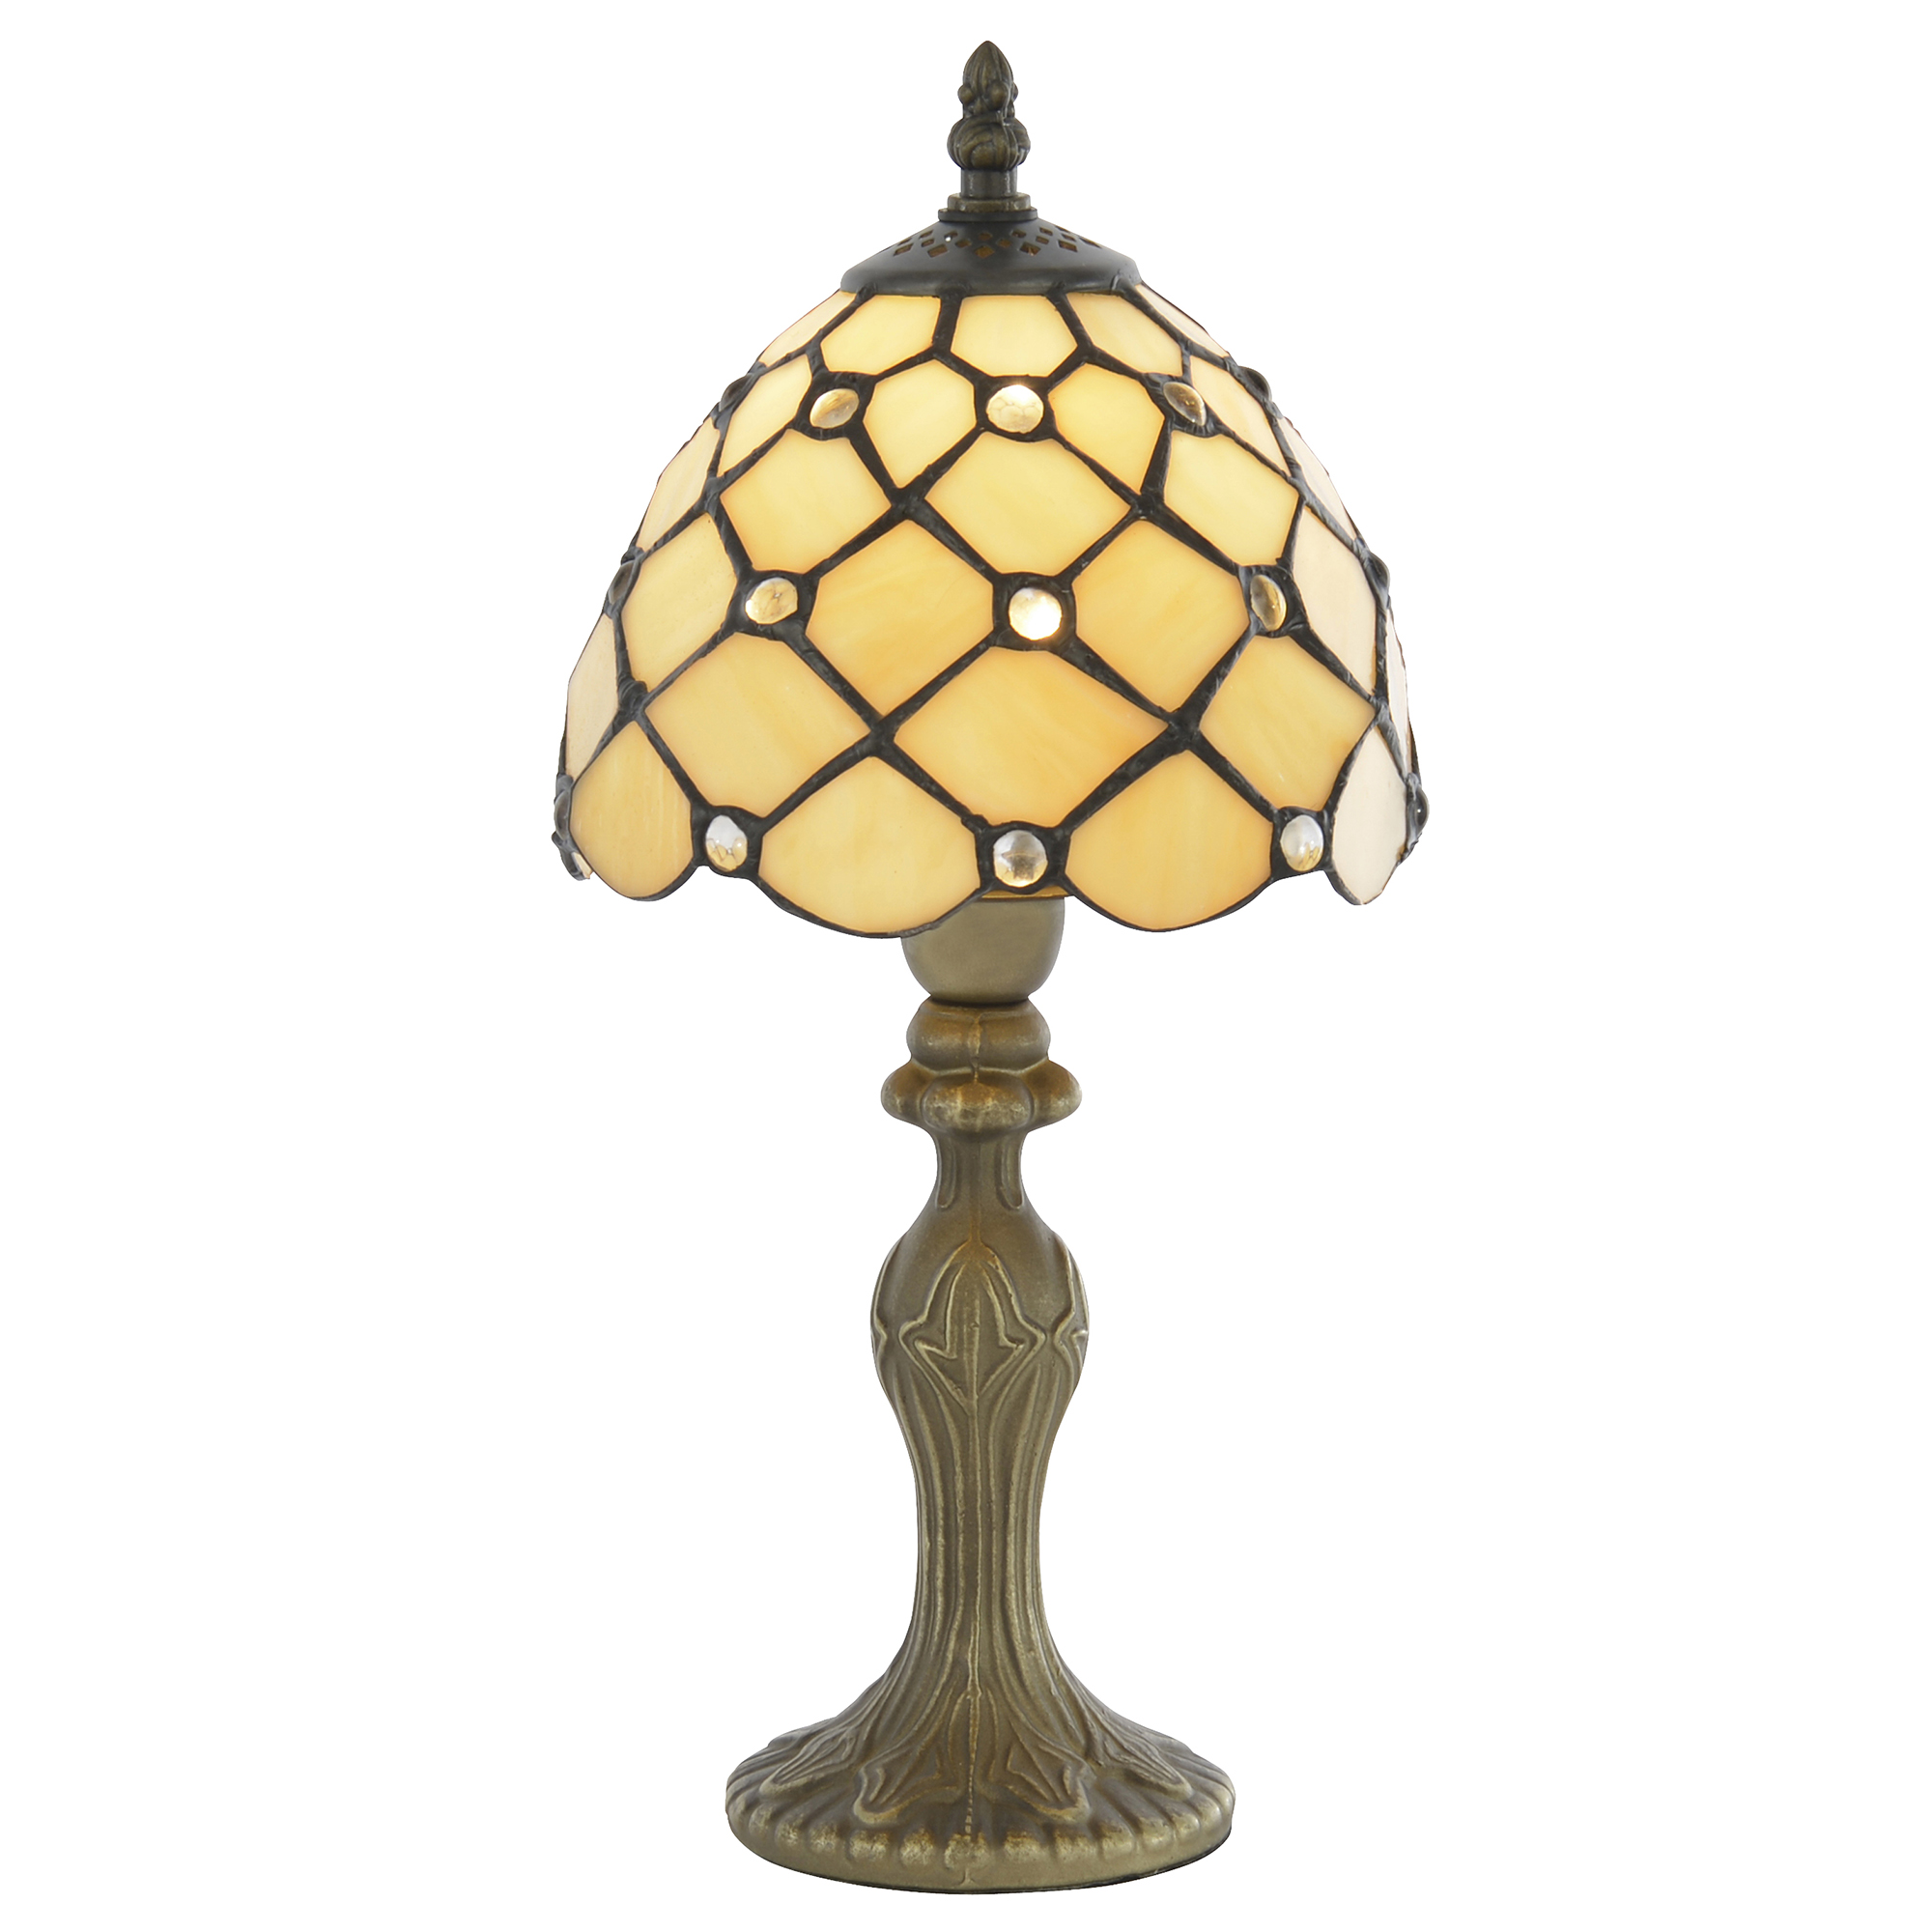 8 Quot Table Lamp 1 Light Tiffany Style Jewel In Honey Shade